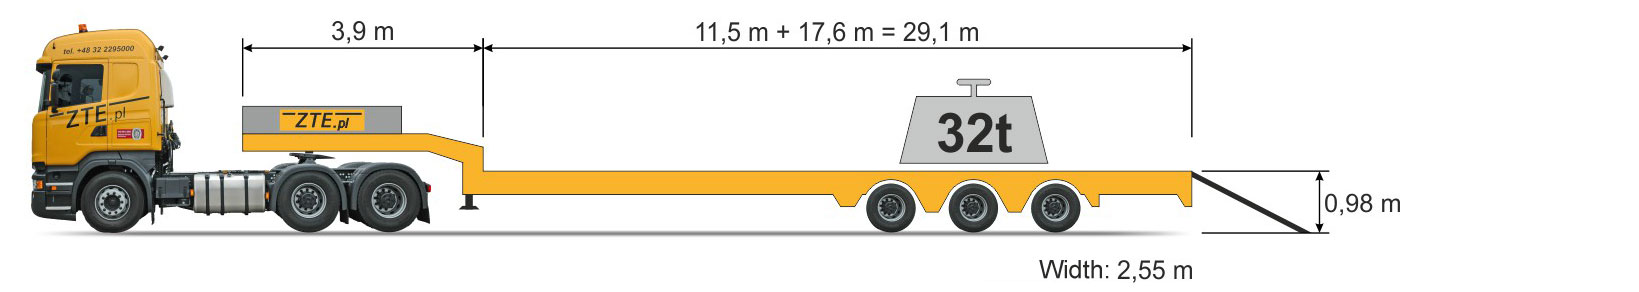 3-axle Semi semi-trailer